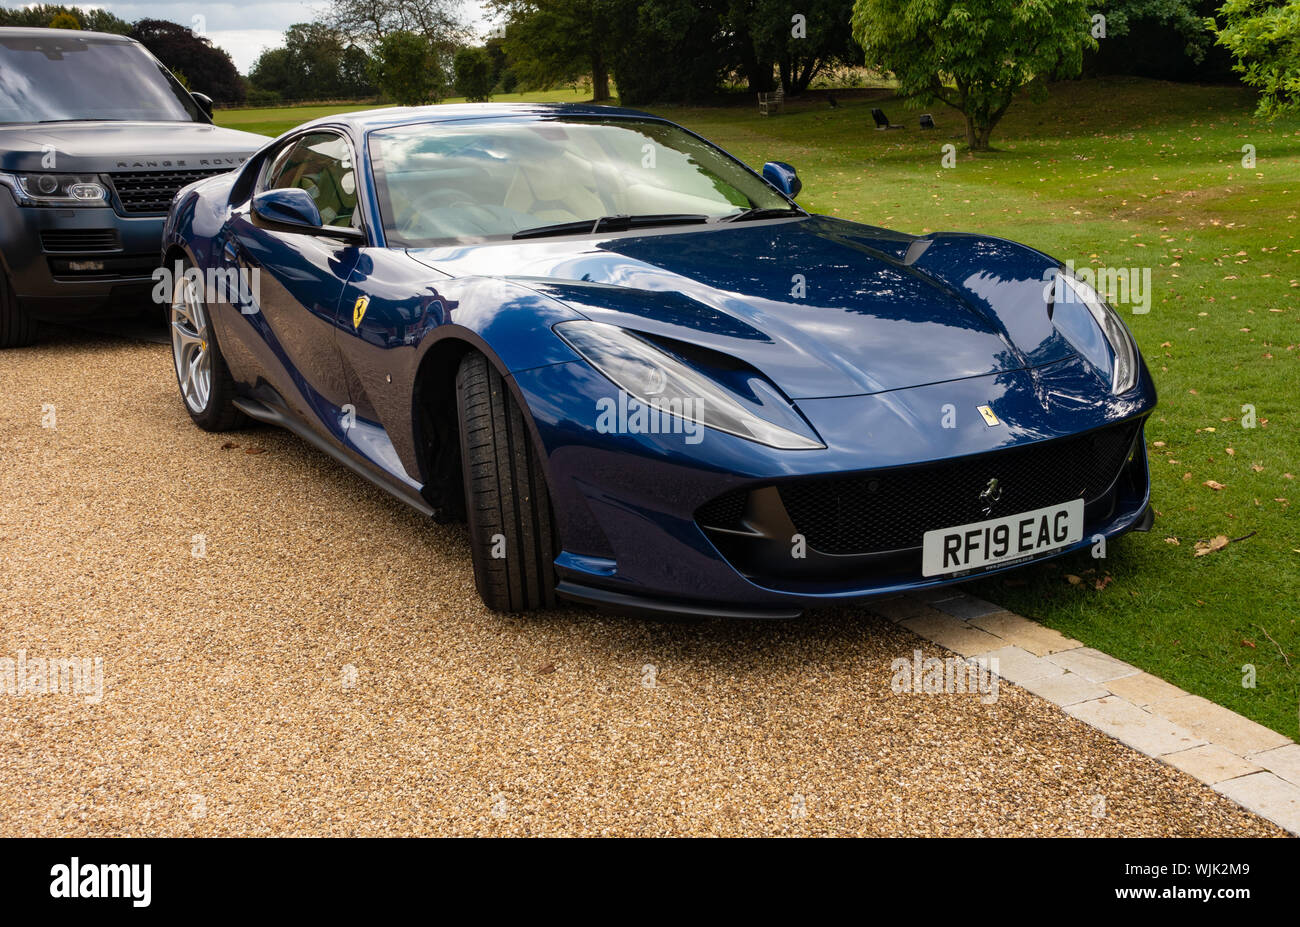 Blue Ferrari High Resolution Stock Photography And Images Alamy